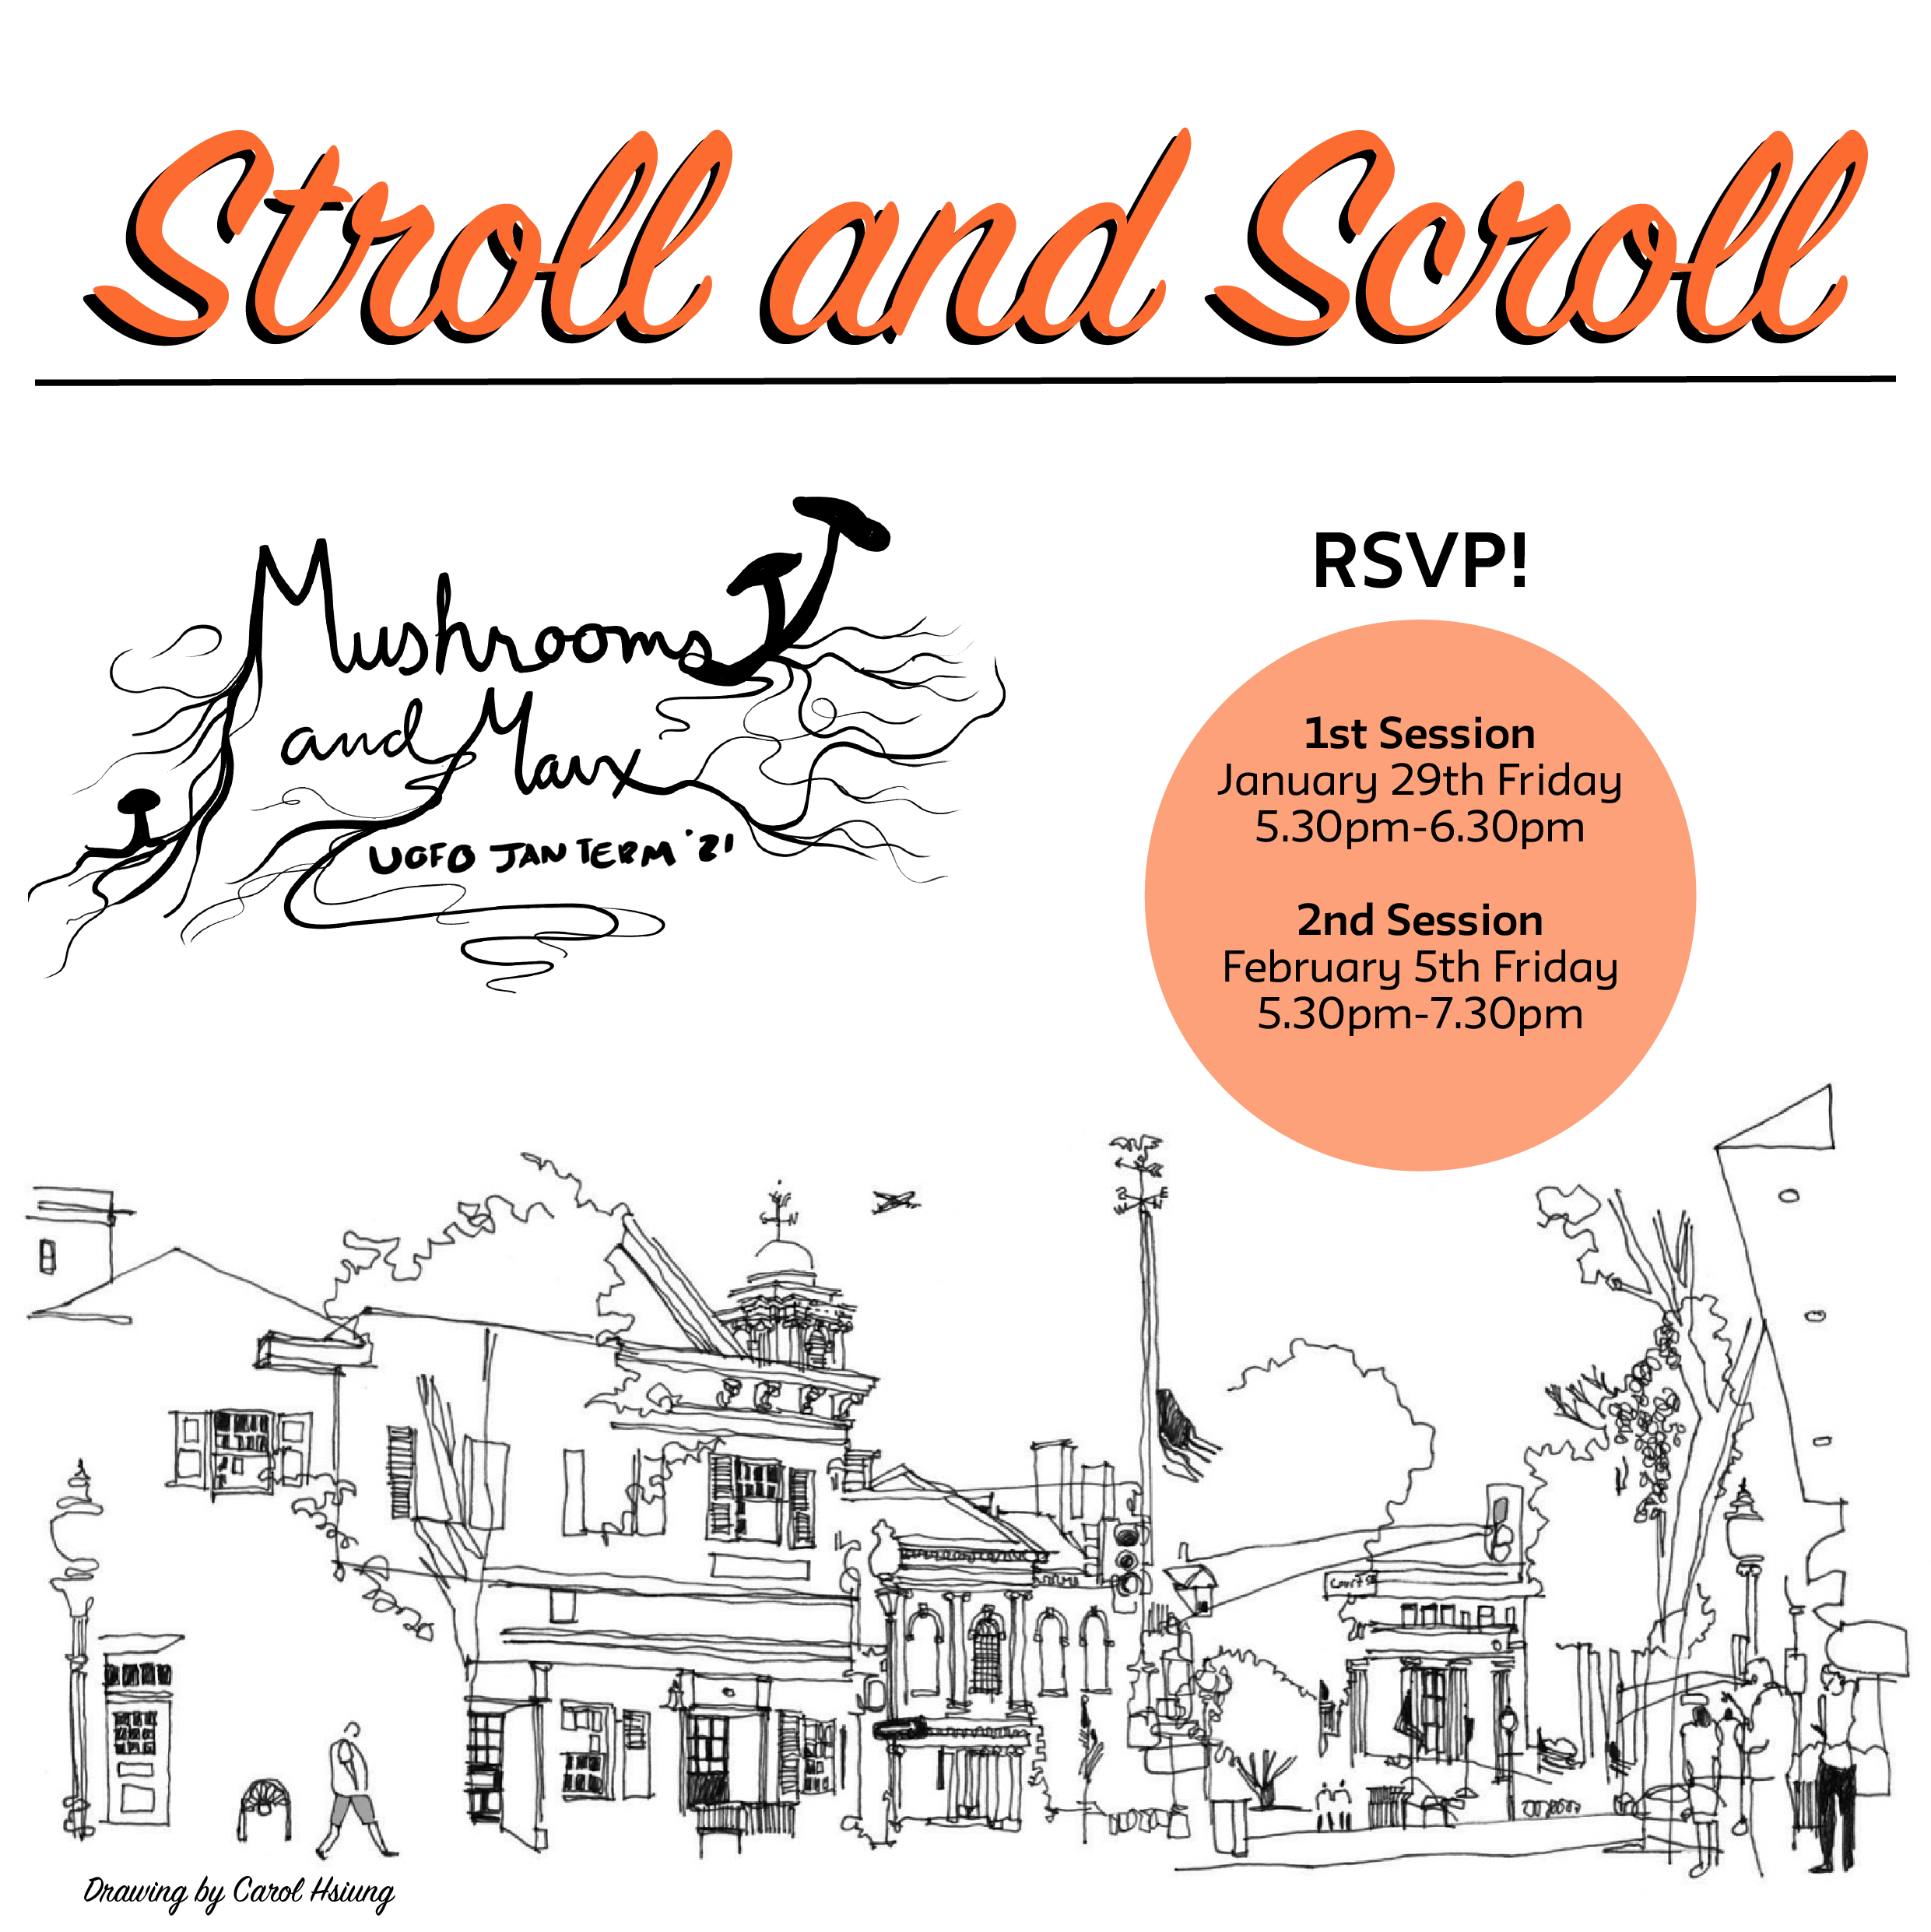 stroll and scroll flyer-01